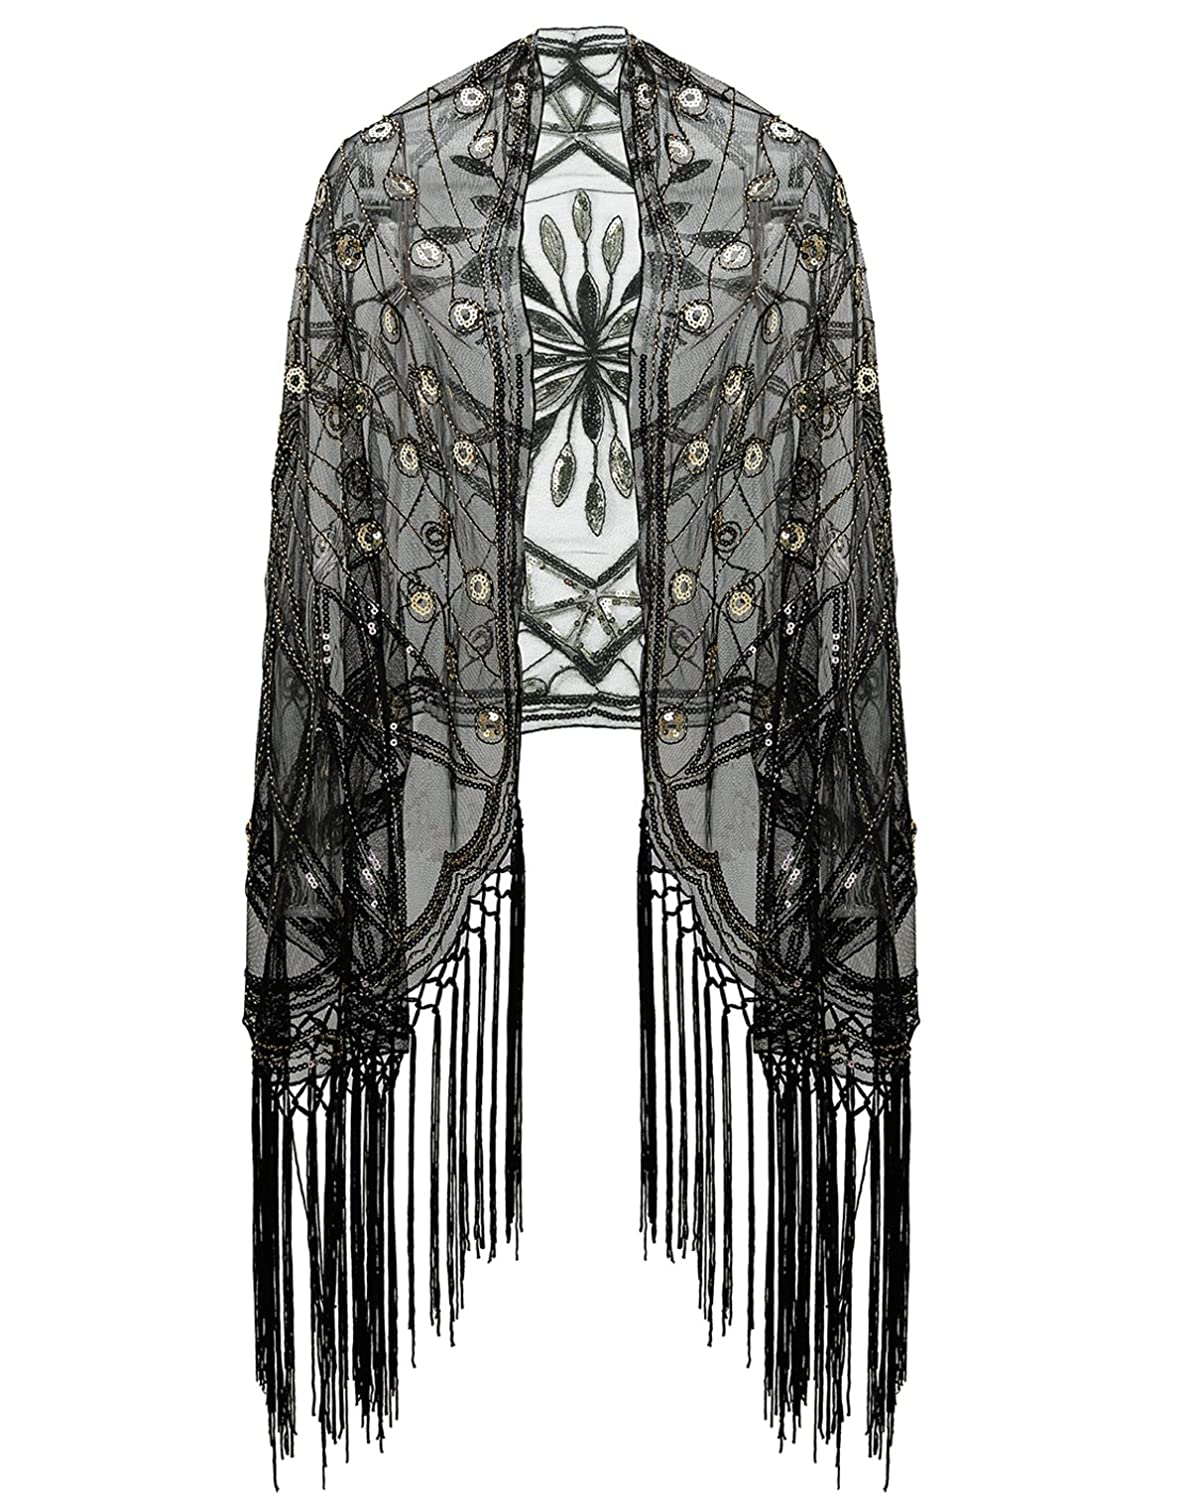 1920s Style Shawls, Wraps, Scarves Metme Womens 1920s Scarf Wraps Sequin Deco Fringed Wedding Cape Evening Shawl Vintage Prom $24.99 AT vintagedancer.com